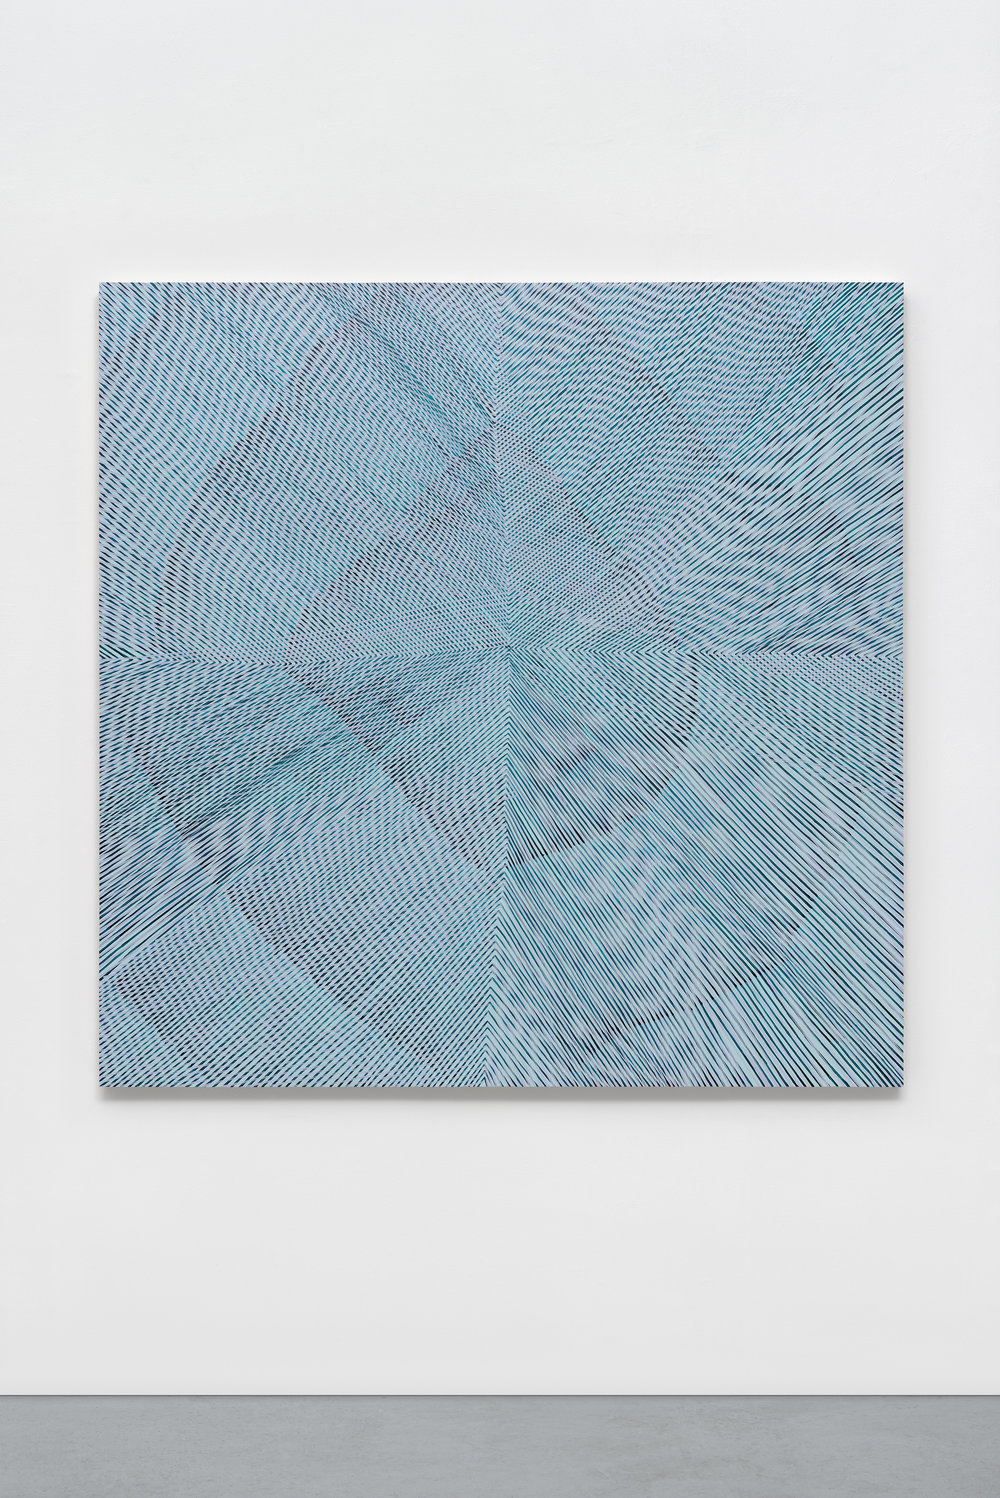 """Blue Morning Glory,"" 2017, acrylic on panel, 60 x 60 x 2 inches"